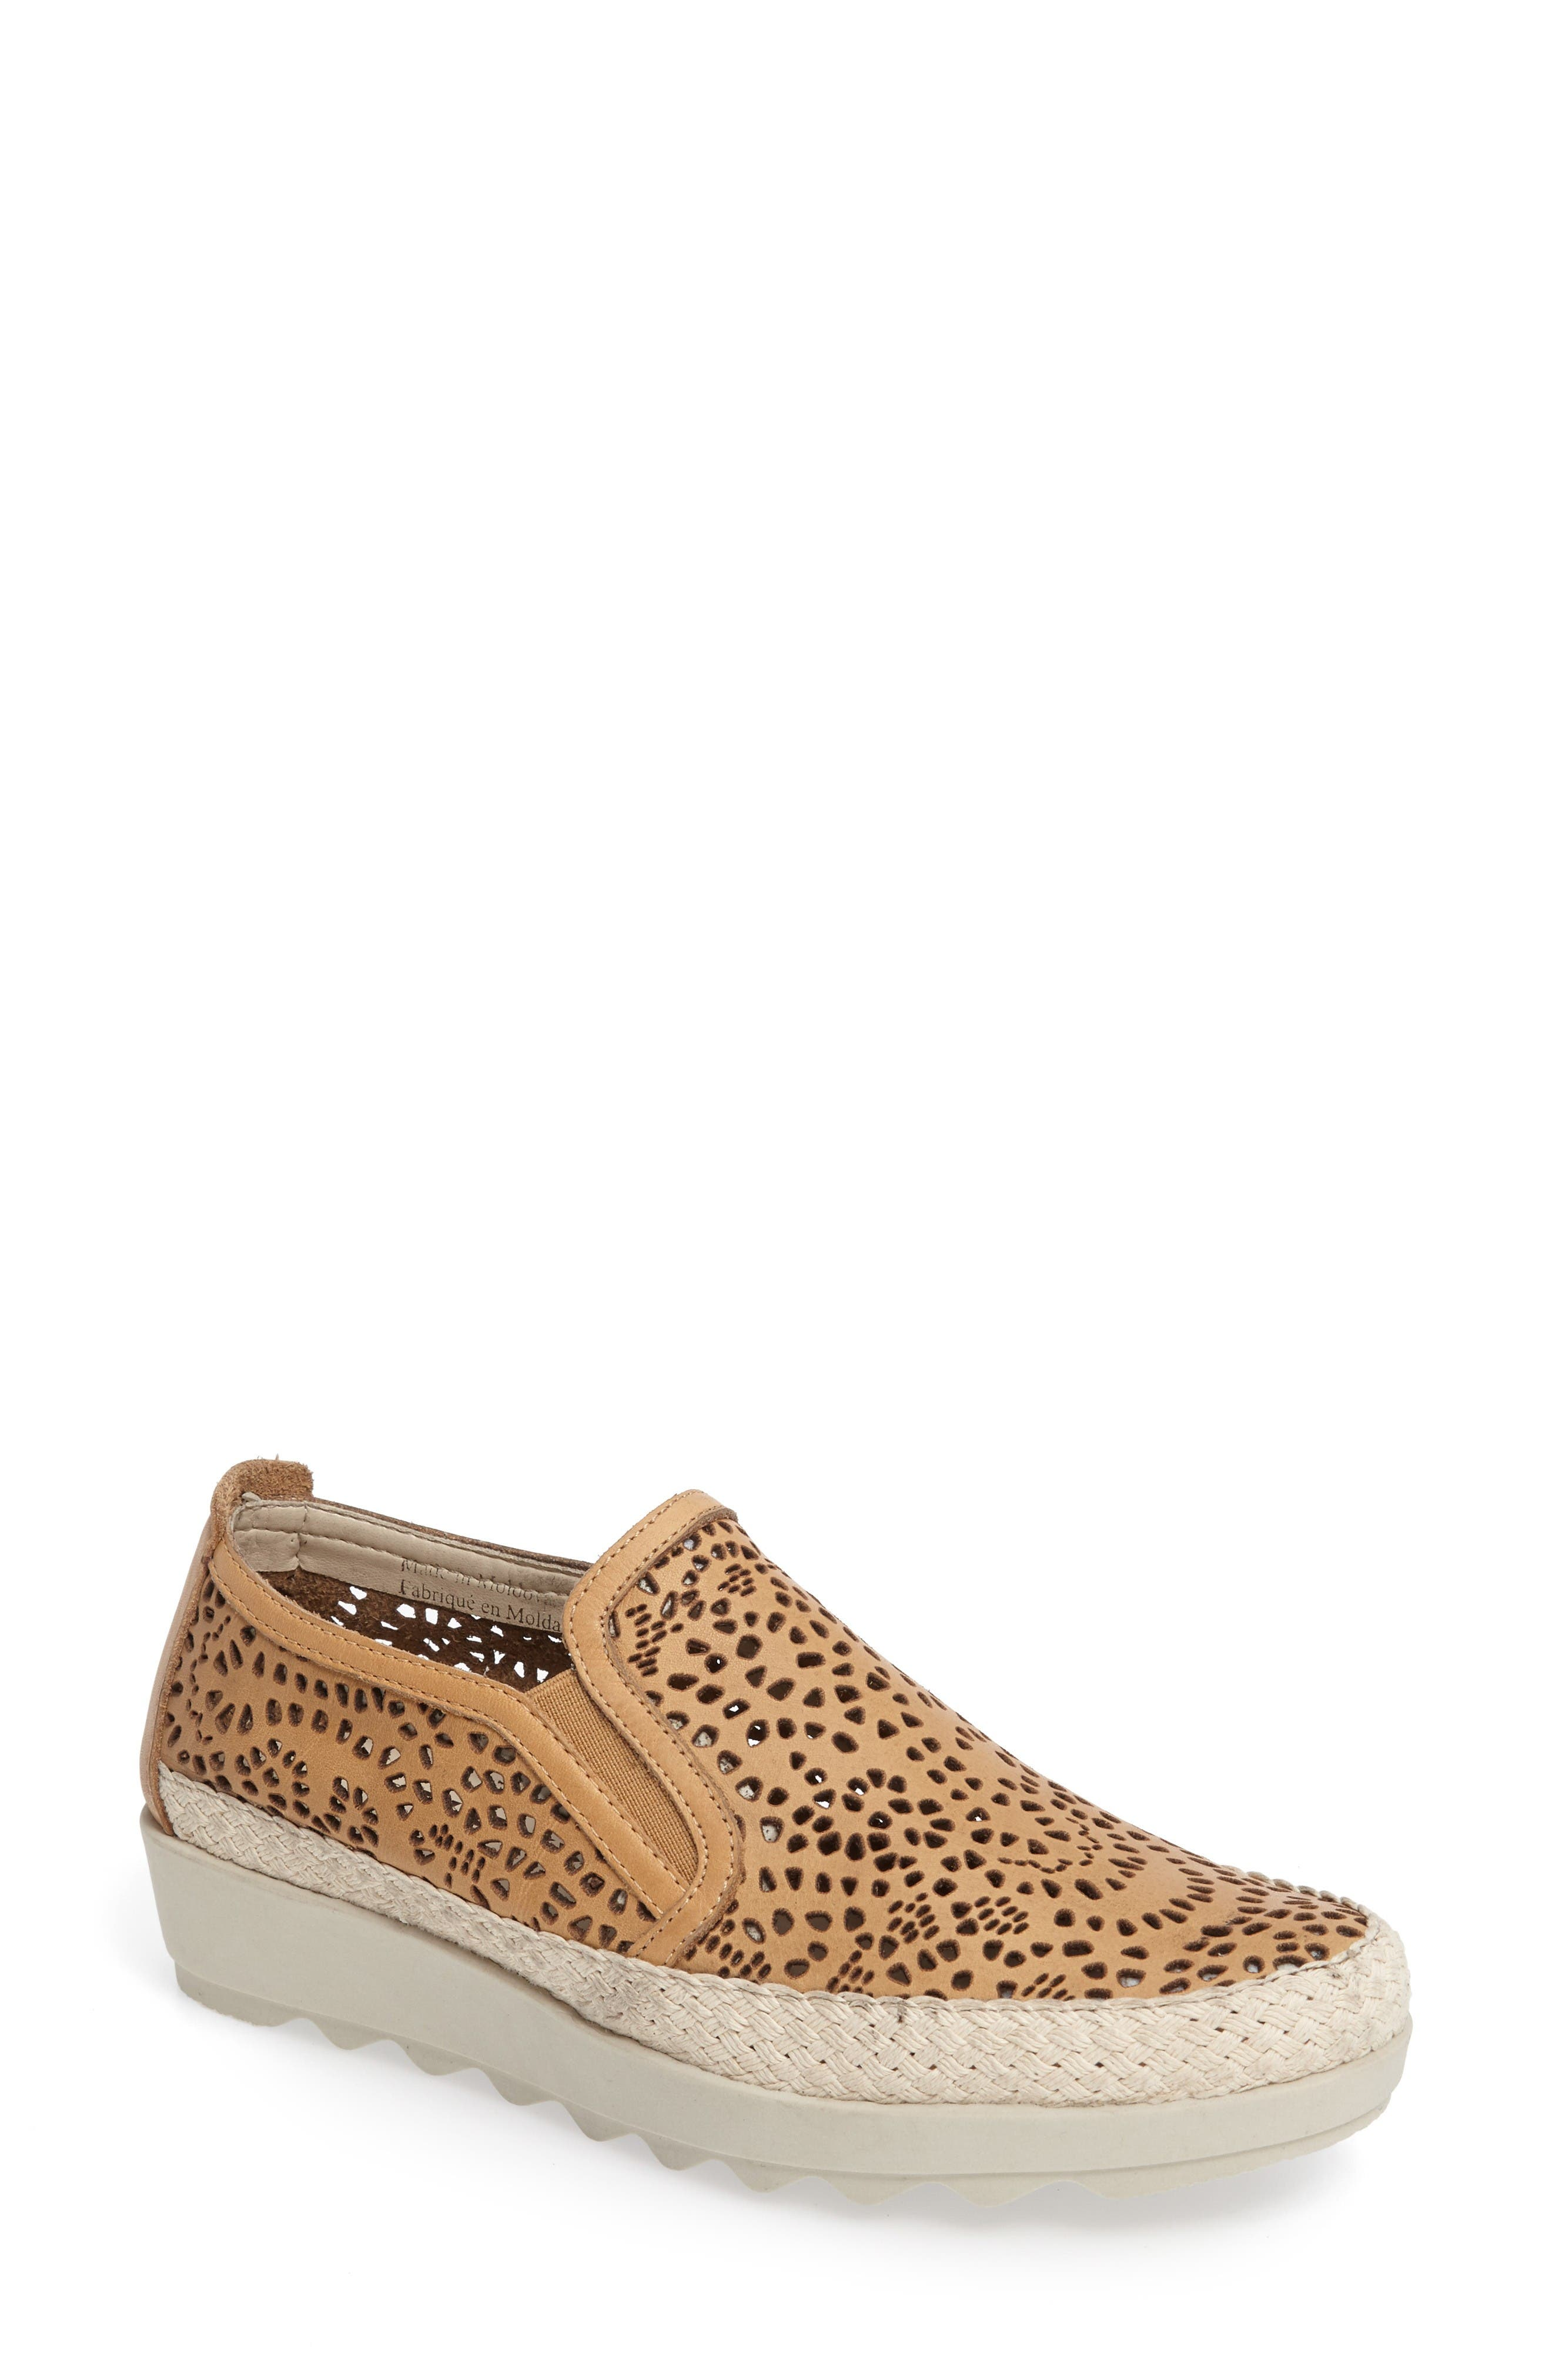 Call Me Perforated Slip-On Sneaker,                         Main,                         color, Camel Leather